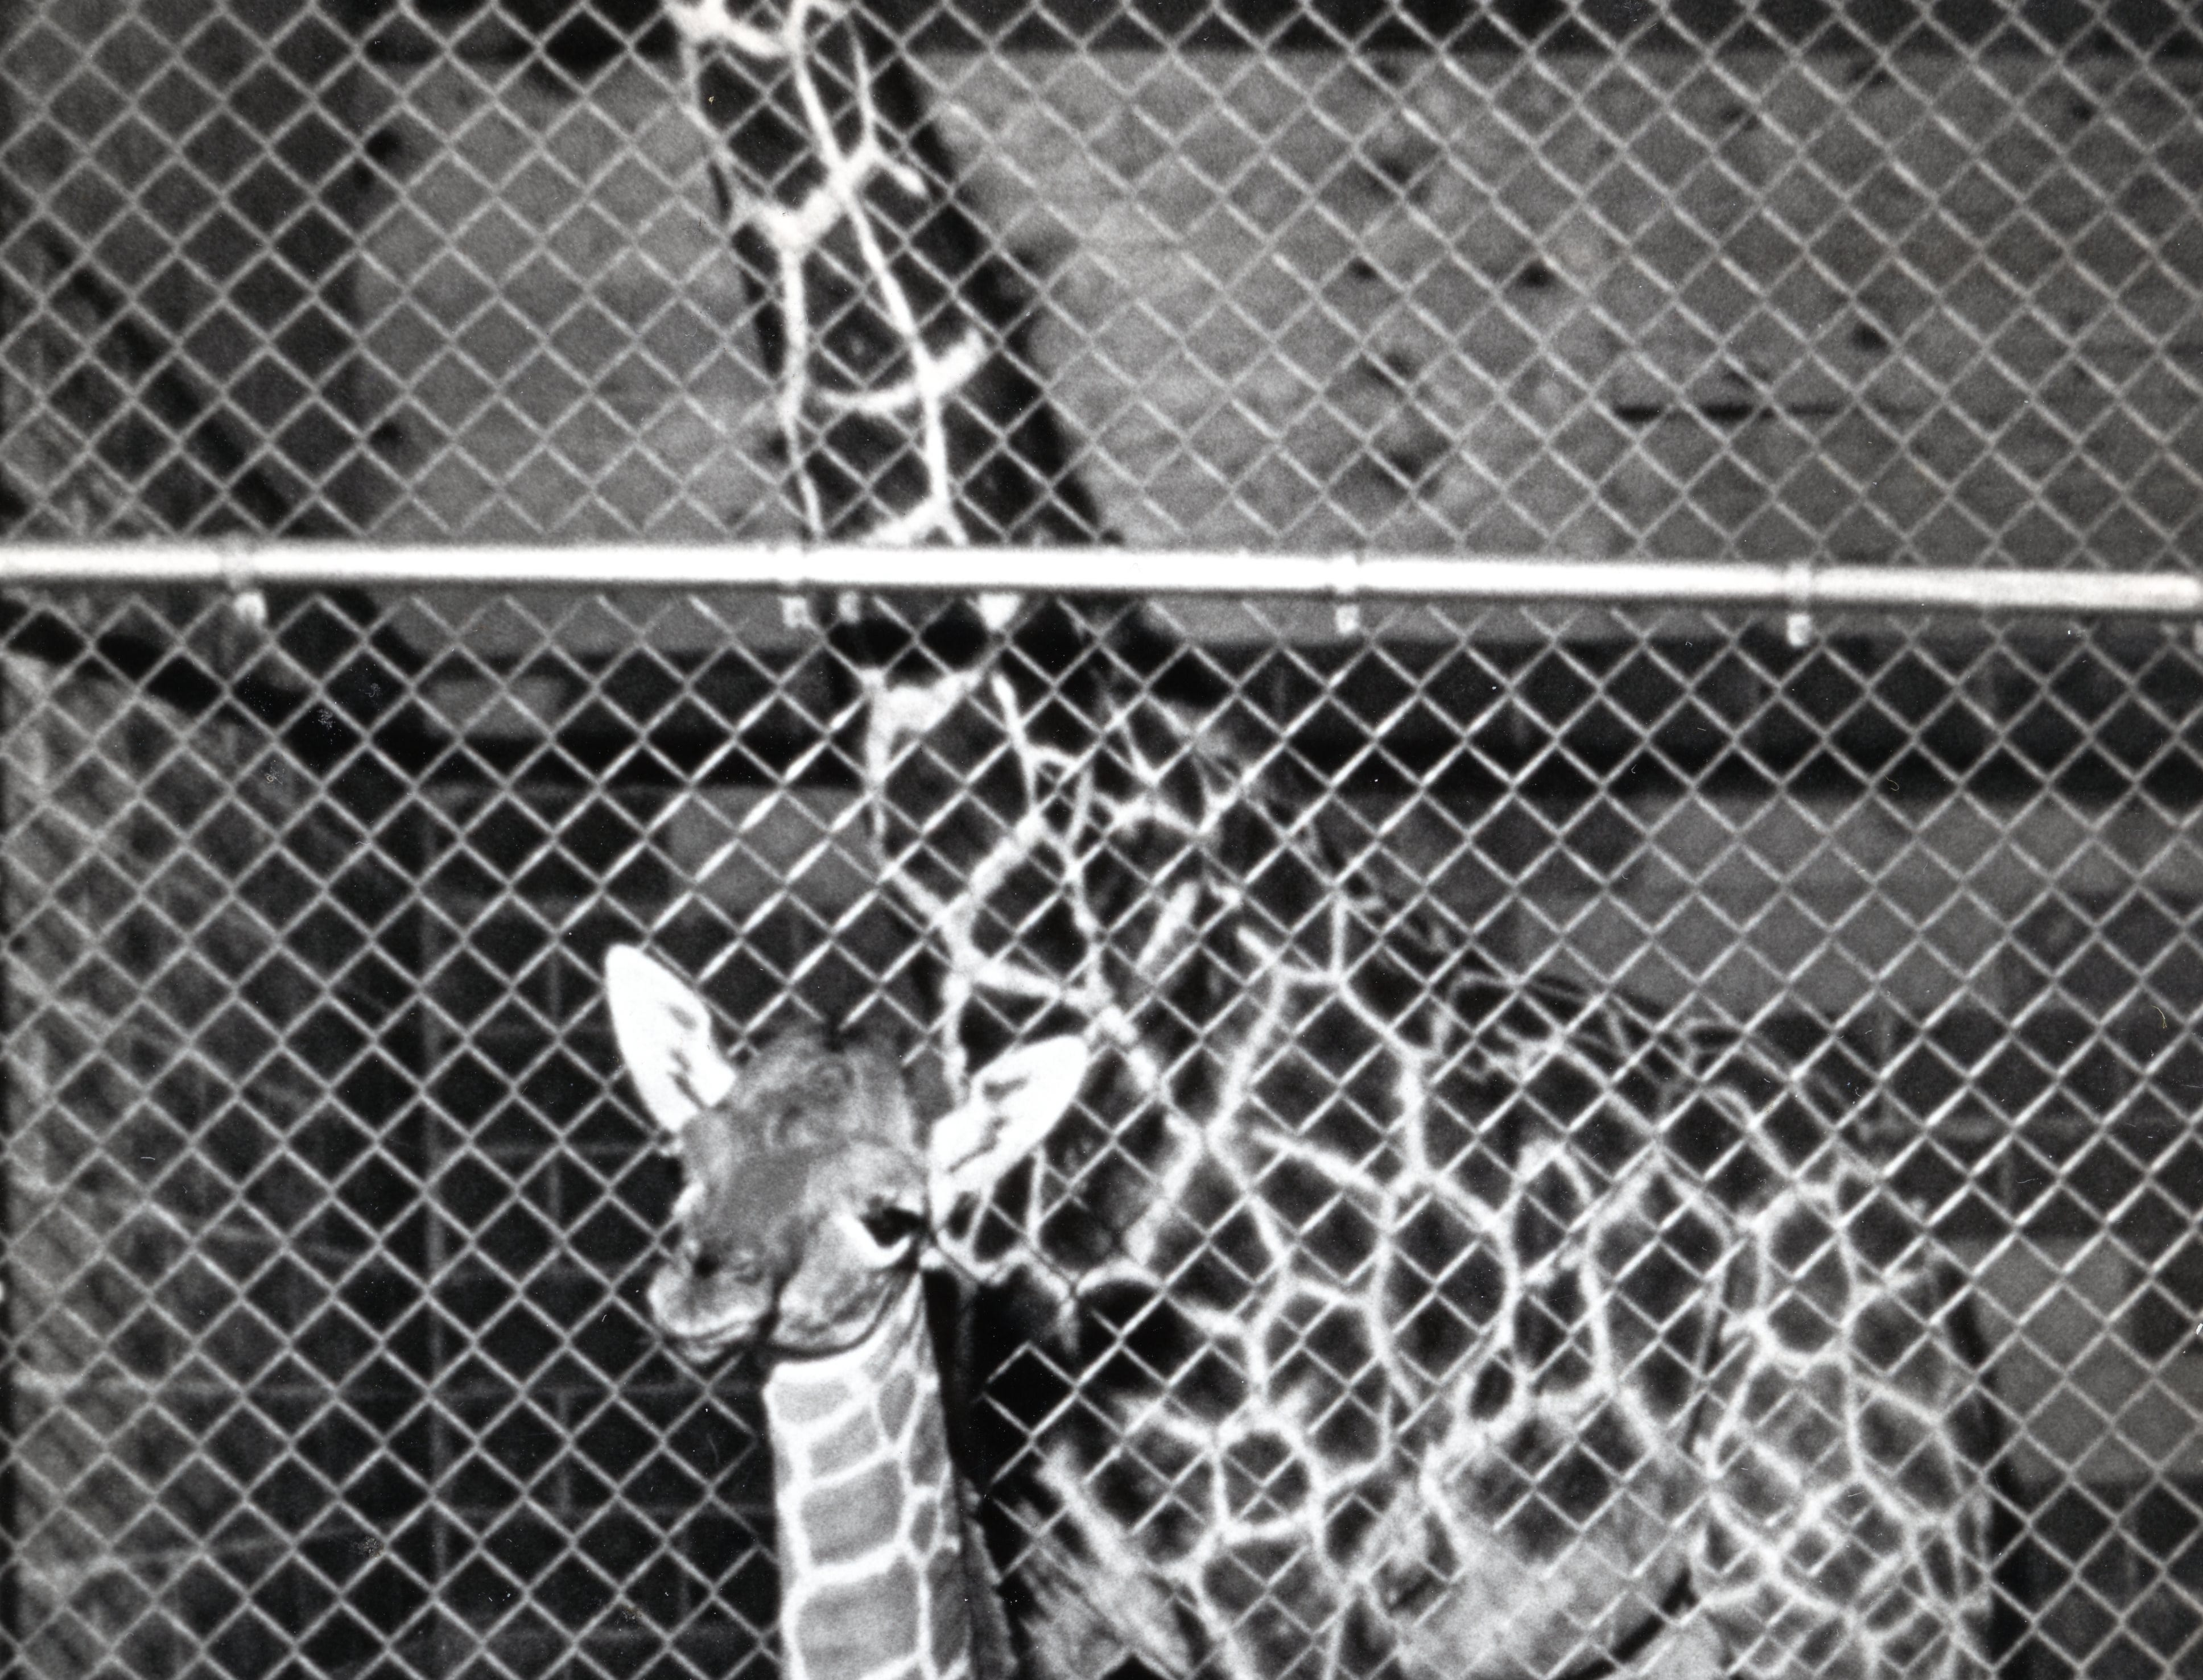 An unnamed giraffe born on June 6, 1987 in the early morning at Knoxville Zoo. The parents are father E.T. and the mother is named Miss T. The baby giraffe would later be named Patches.